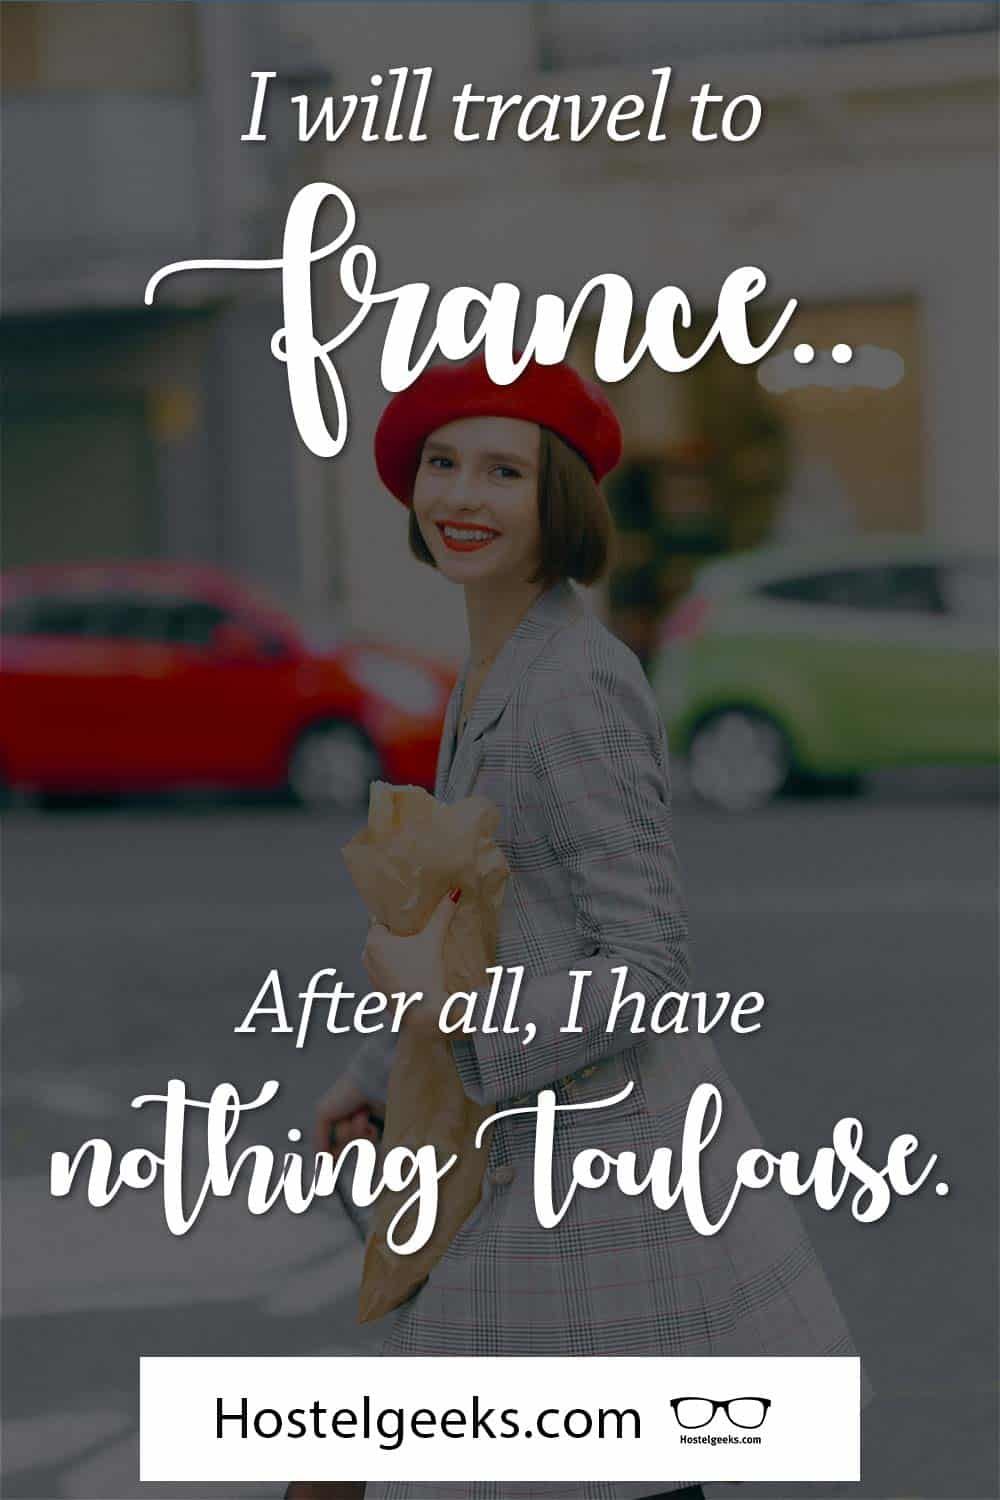 I will travel to France. After all, I have nothing Toulouse.